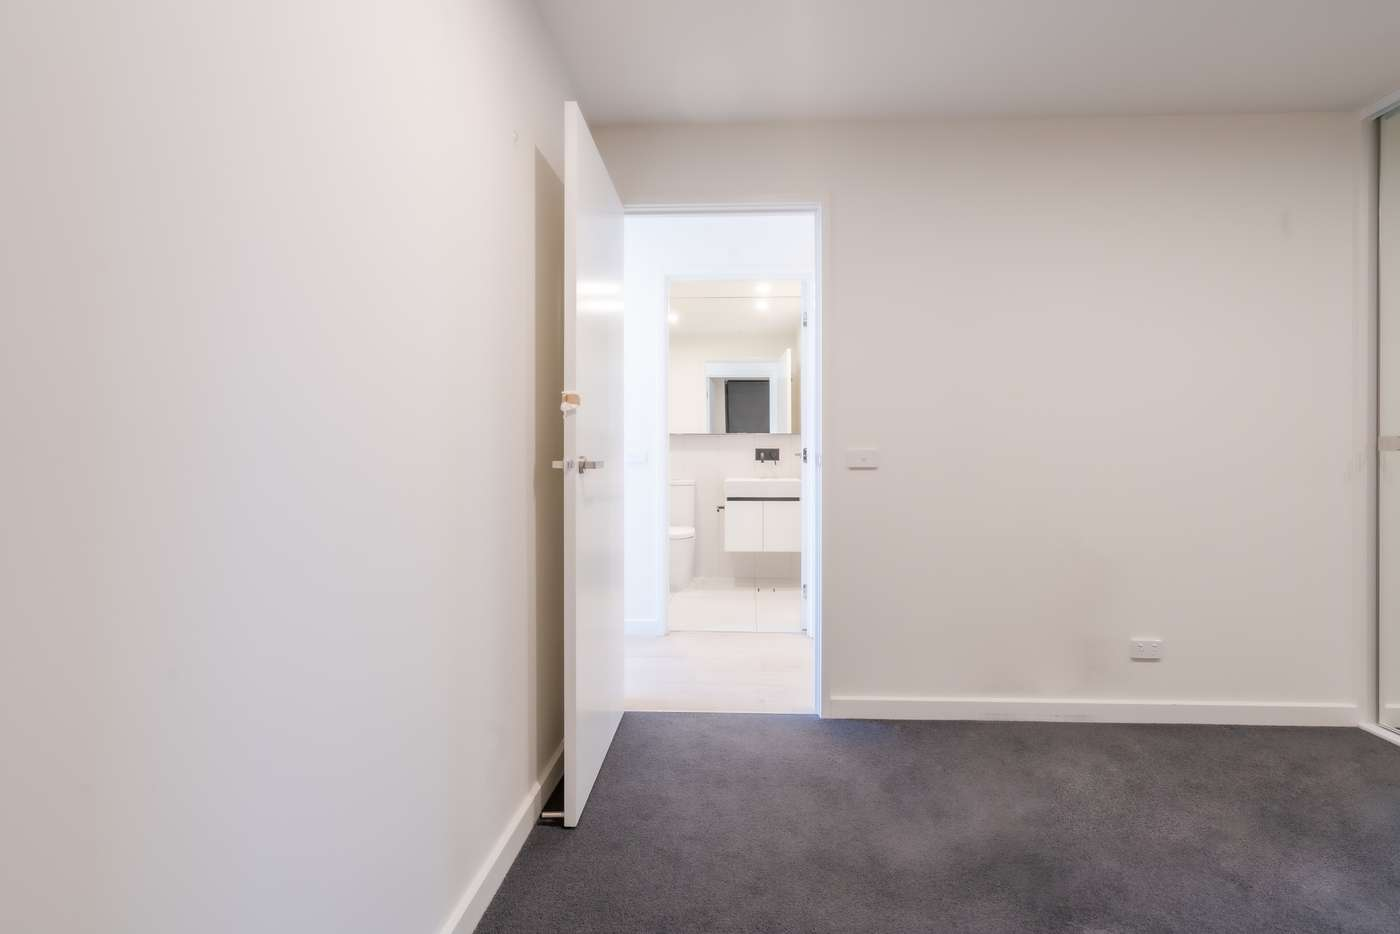 Seventh view of Homely apartment listing, 1305/61-63 Haig Street, Southbank VIC 3006